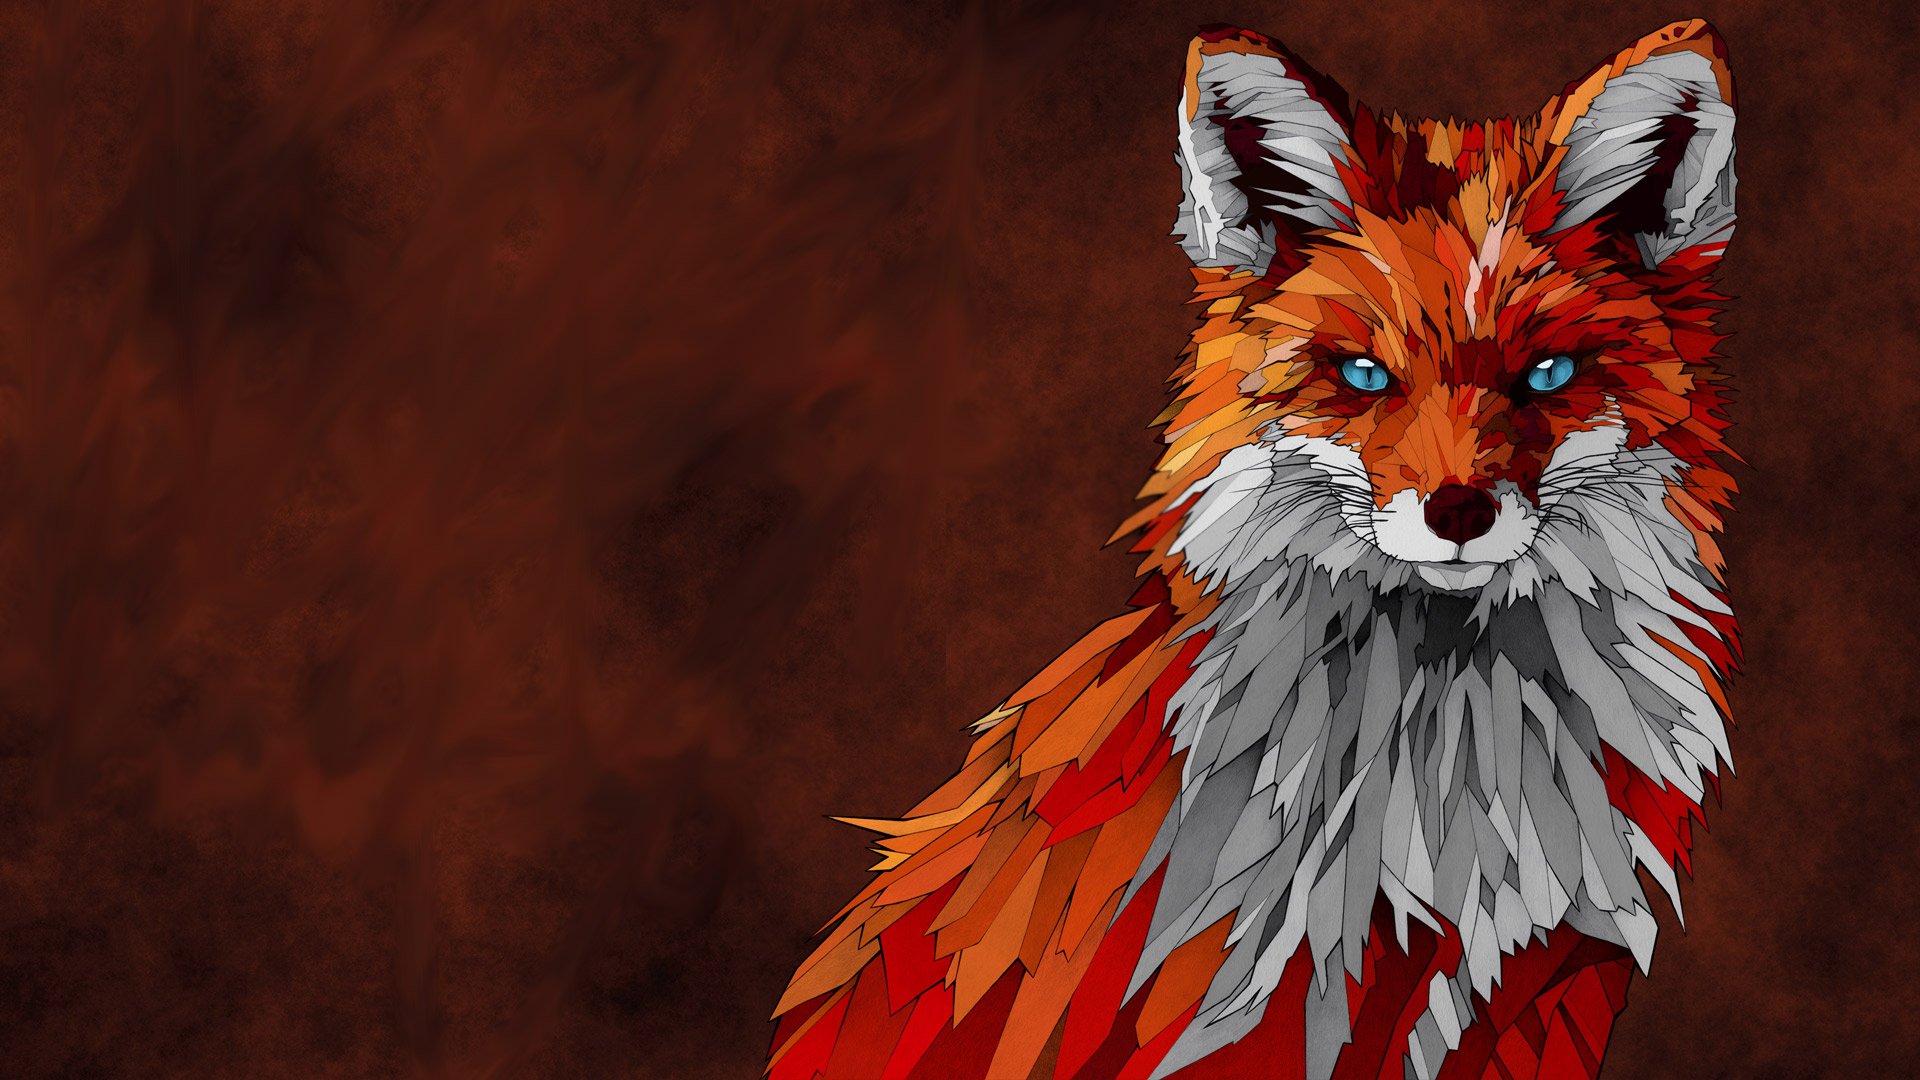 Abstract Fox Art Fox Artwork Hd Artist 4k Wallpapers Images Backgrounds